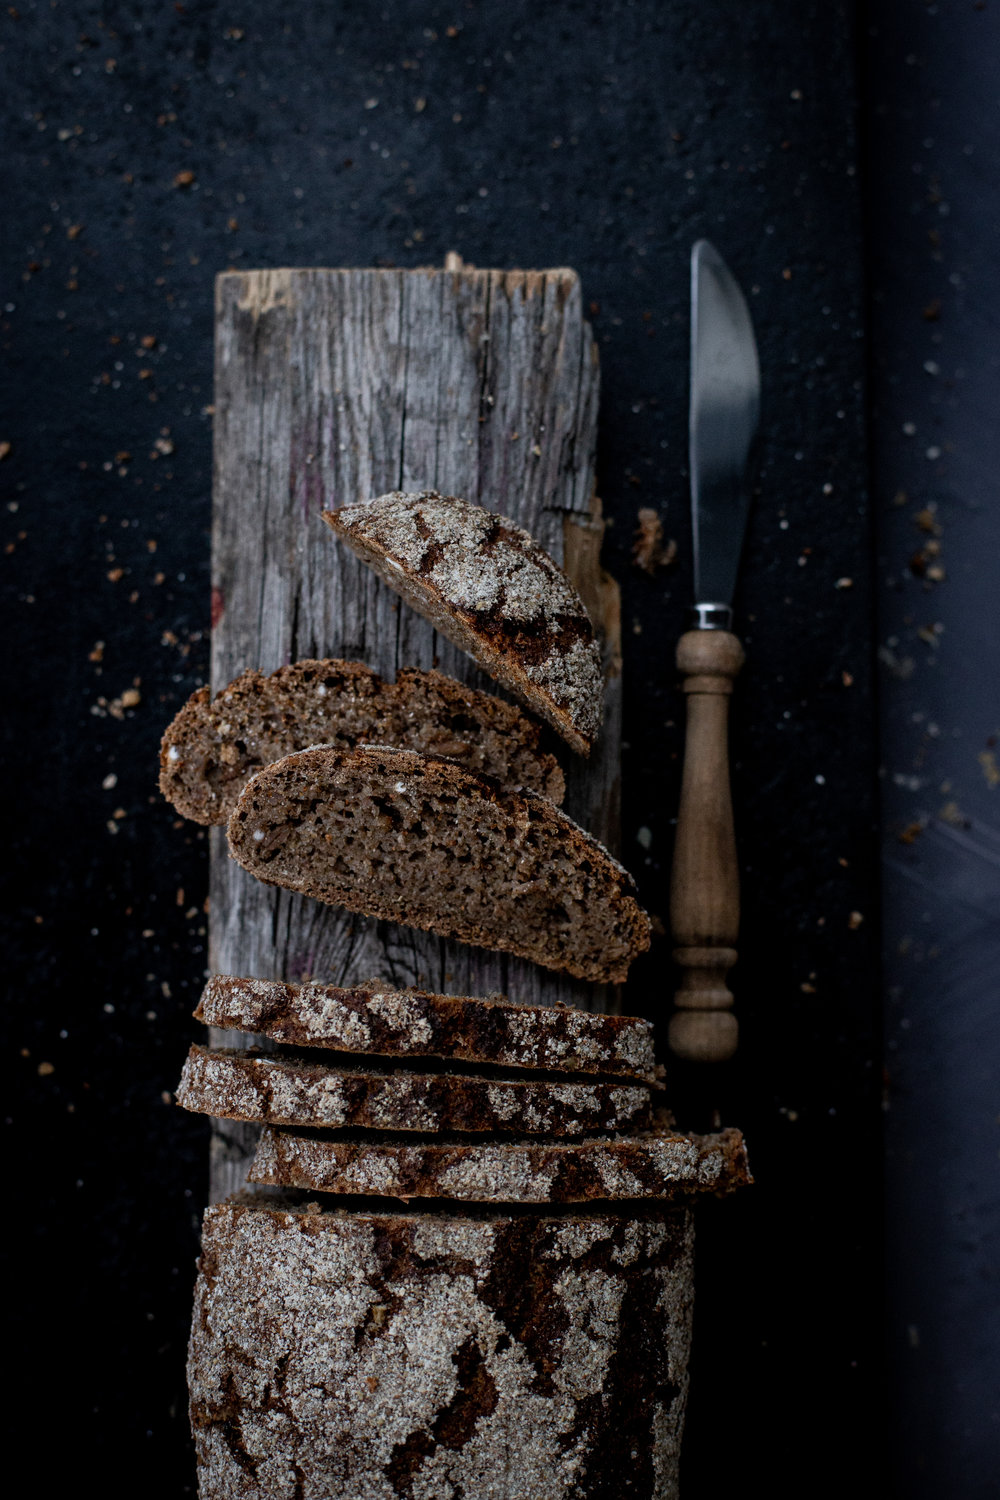 Smoked Ryebread - water, rye sourdough, rye flour, smoked rye, rye grains, salt, yeast (salt 0,9%)(veg)4,90,-